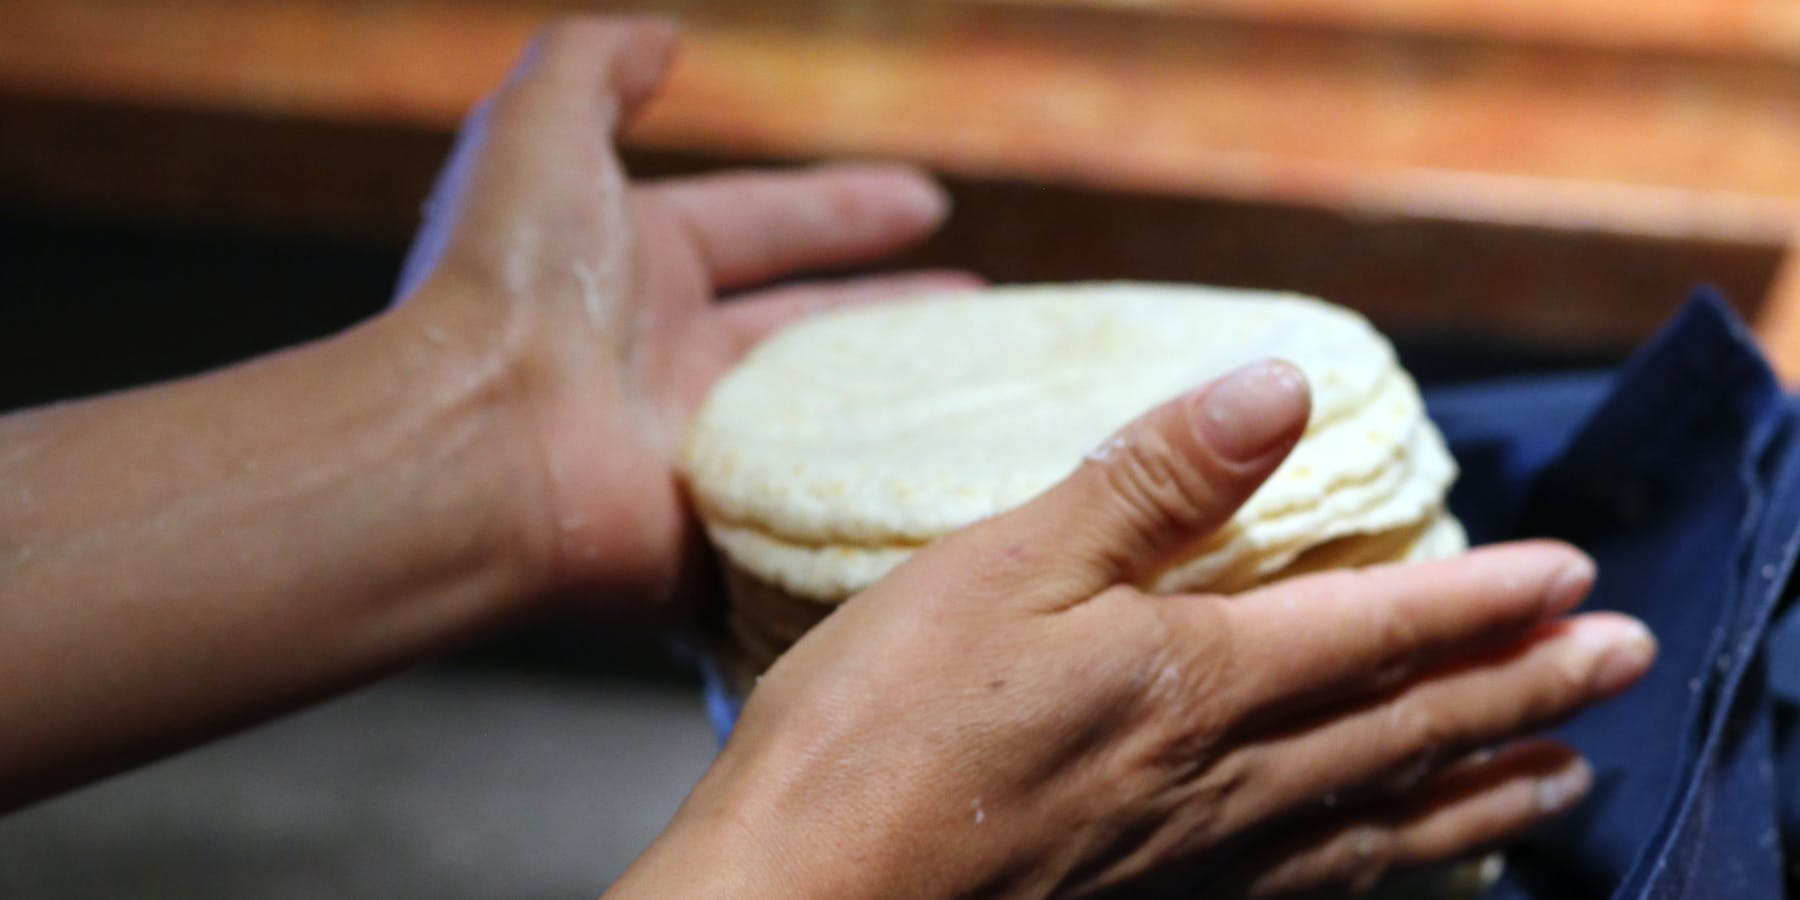 Hand made tortillas